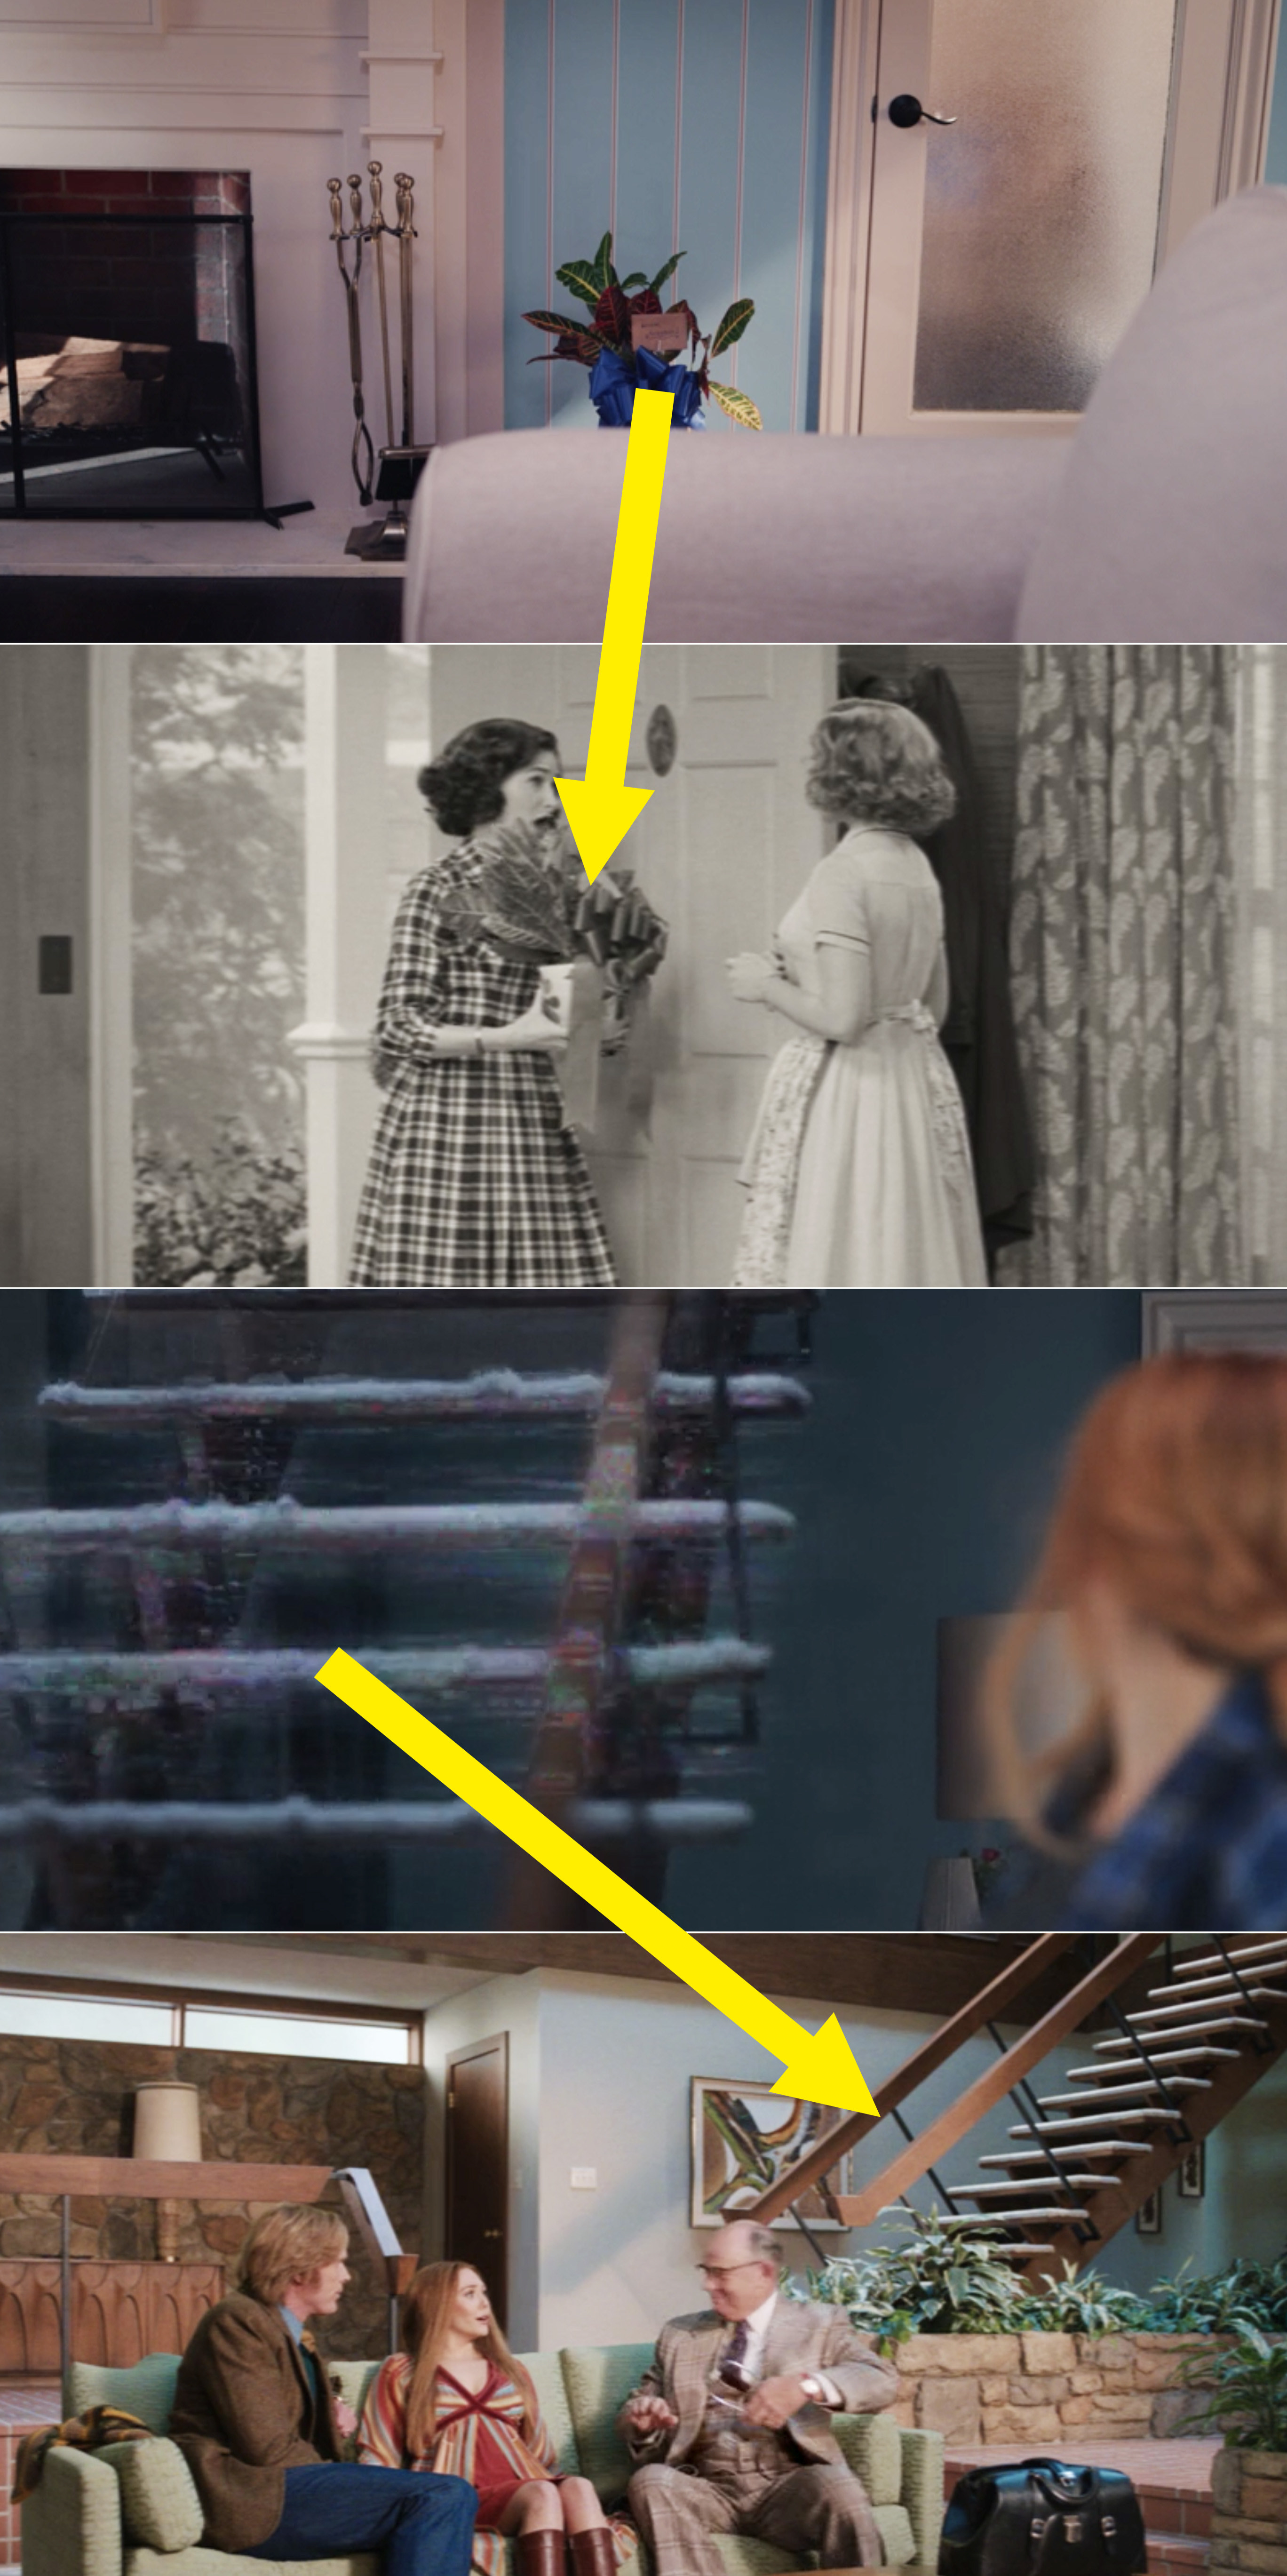 Arrows pointing to the potted plant Agnes gave Wanda and the stairs from Episode 3